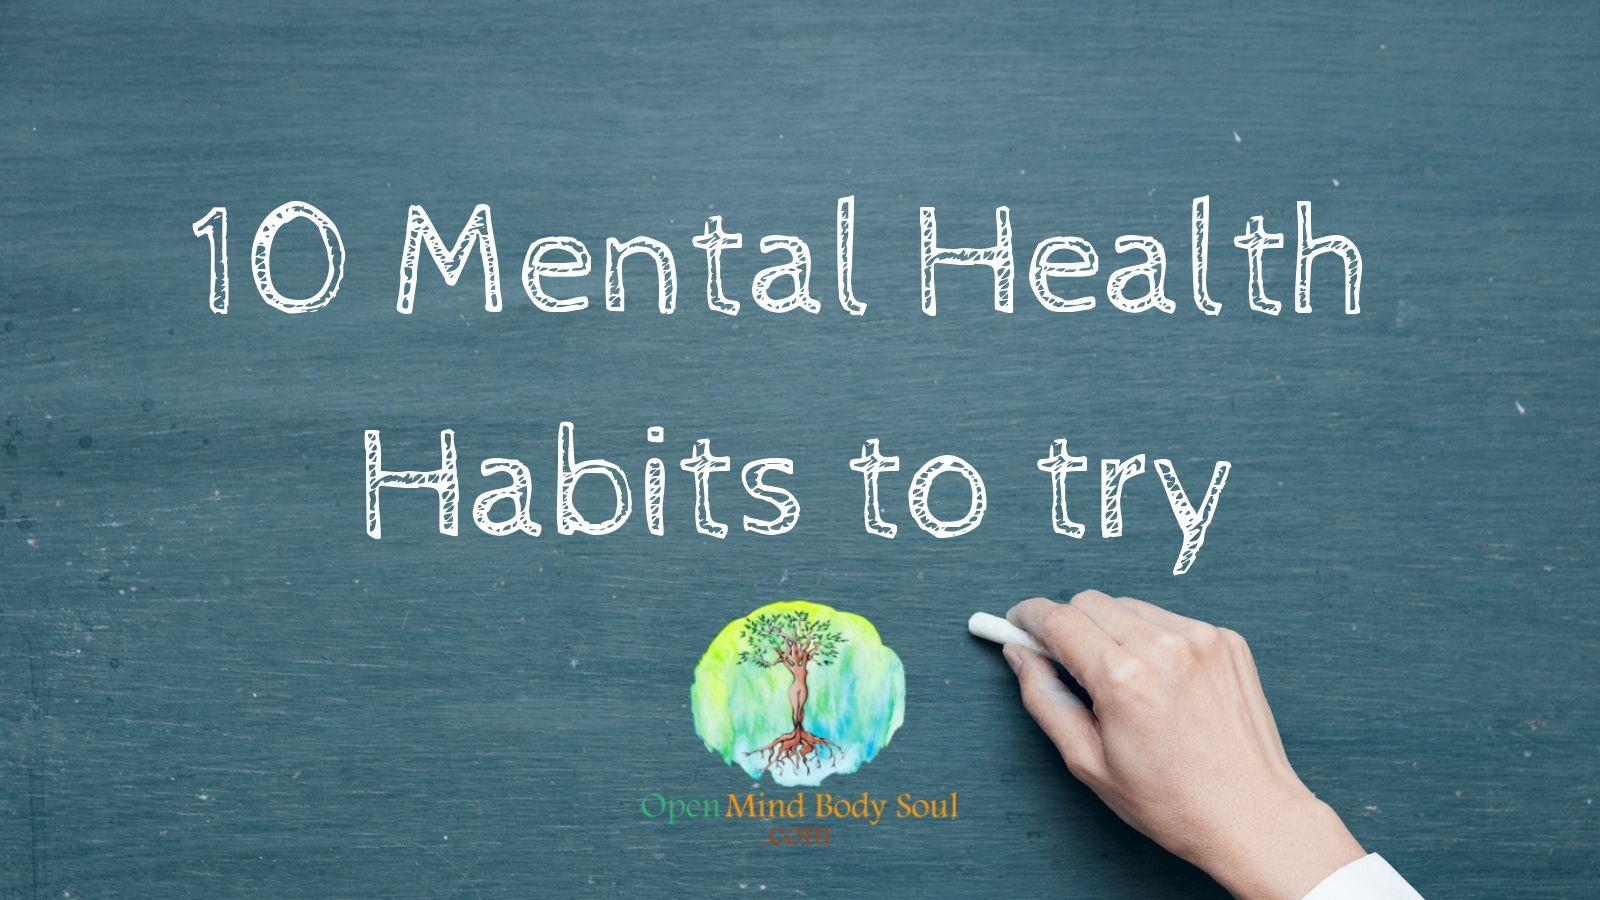 Habits-to-try-for-better-Mental-Health.jpg